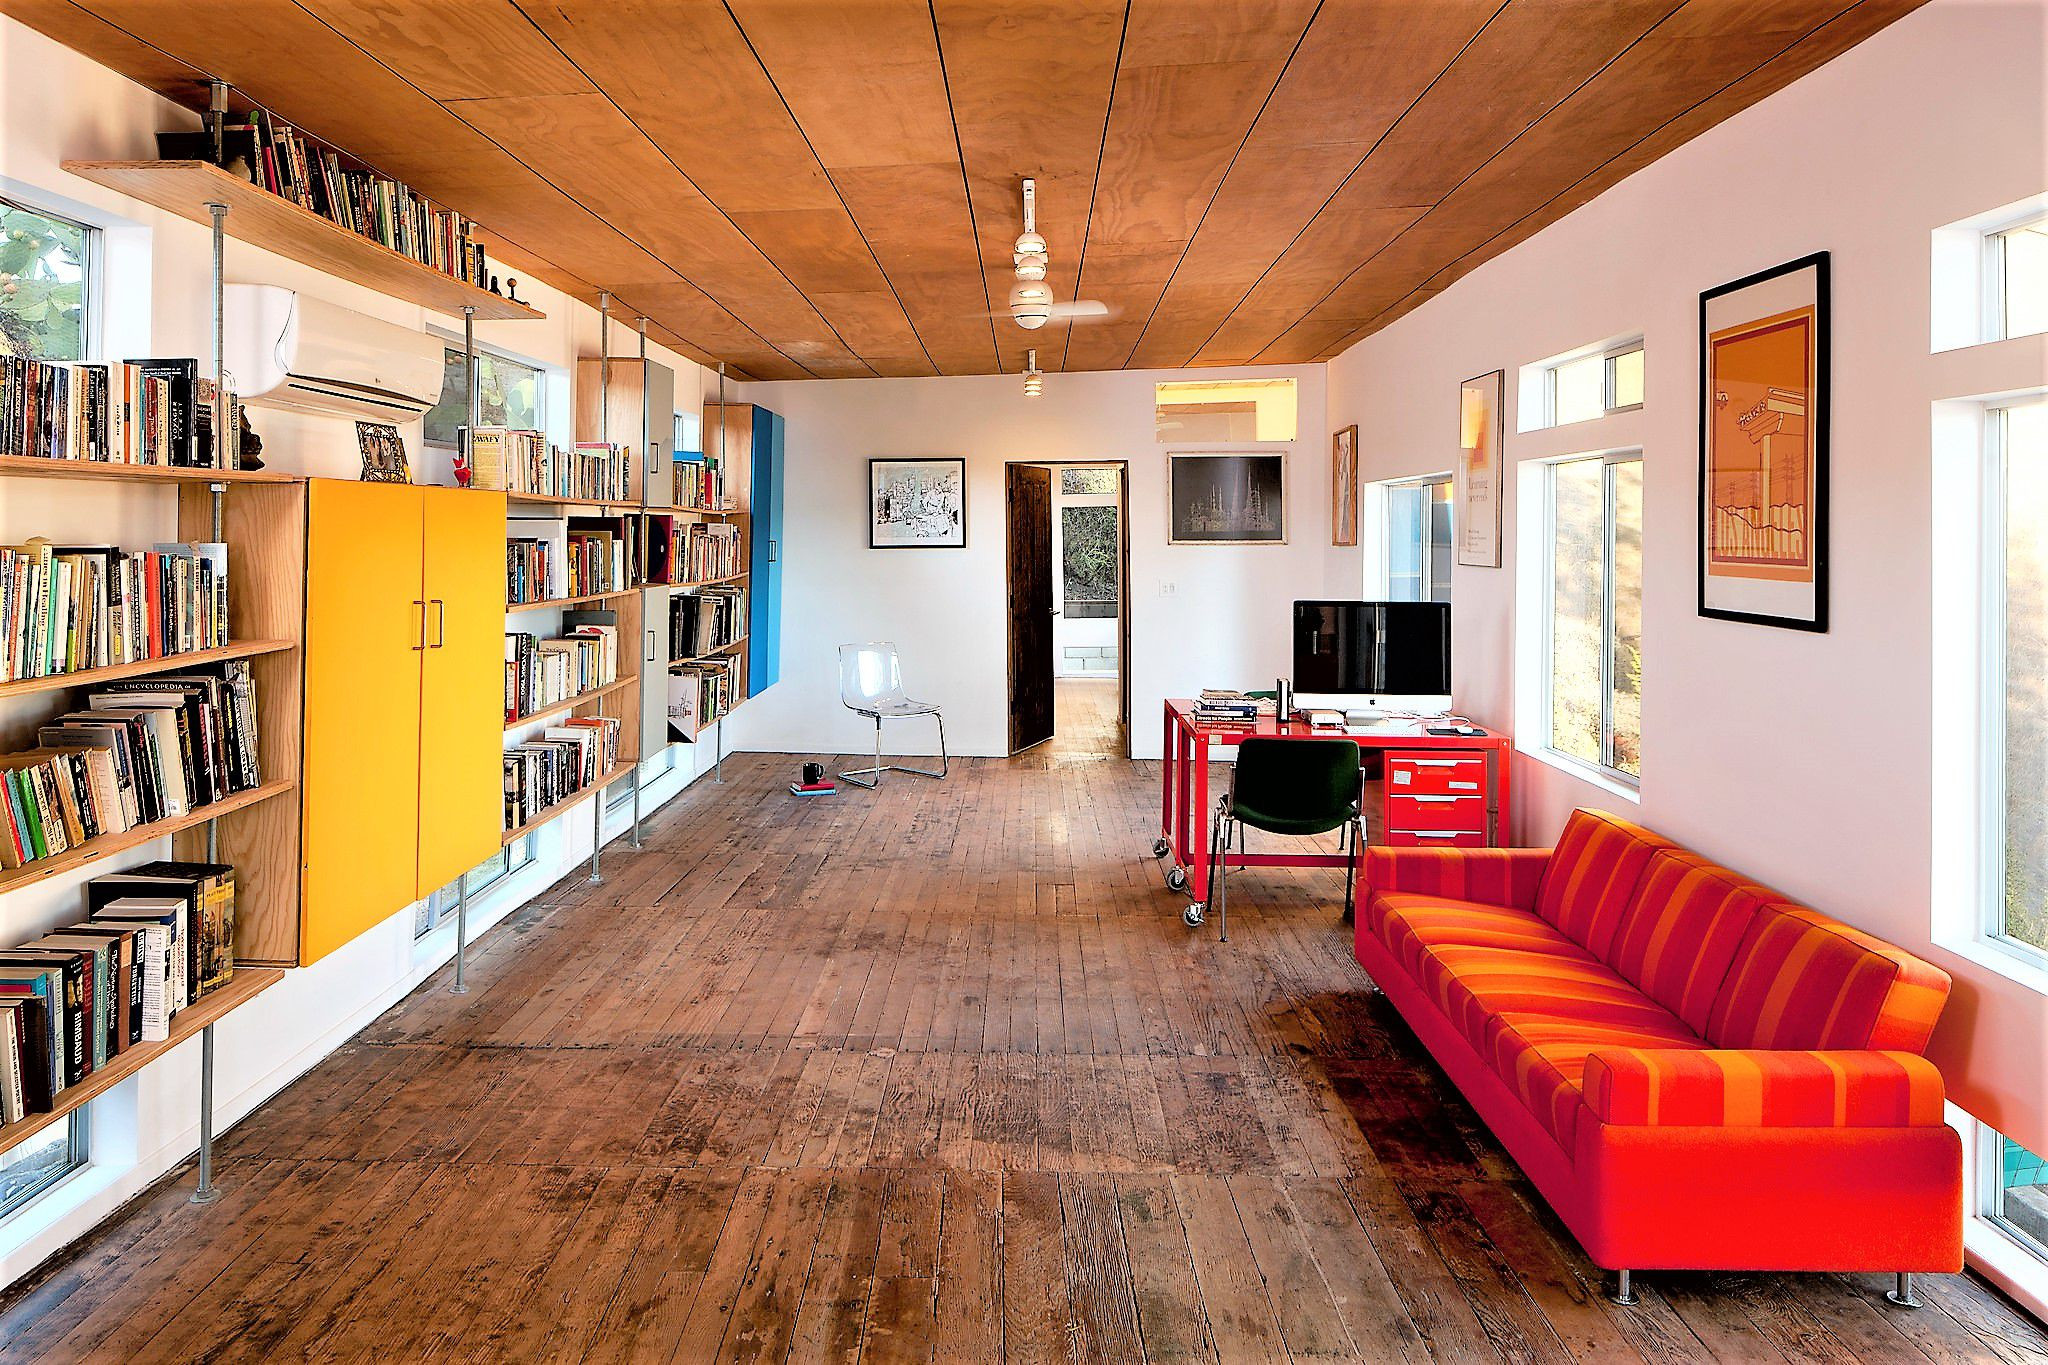 hardwood flooring deals in gta of wood flooring and your homes resale value with reclaimed wood flooring 2 582f4c535f9b58d5b1b16e62